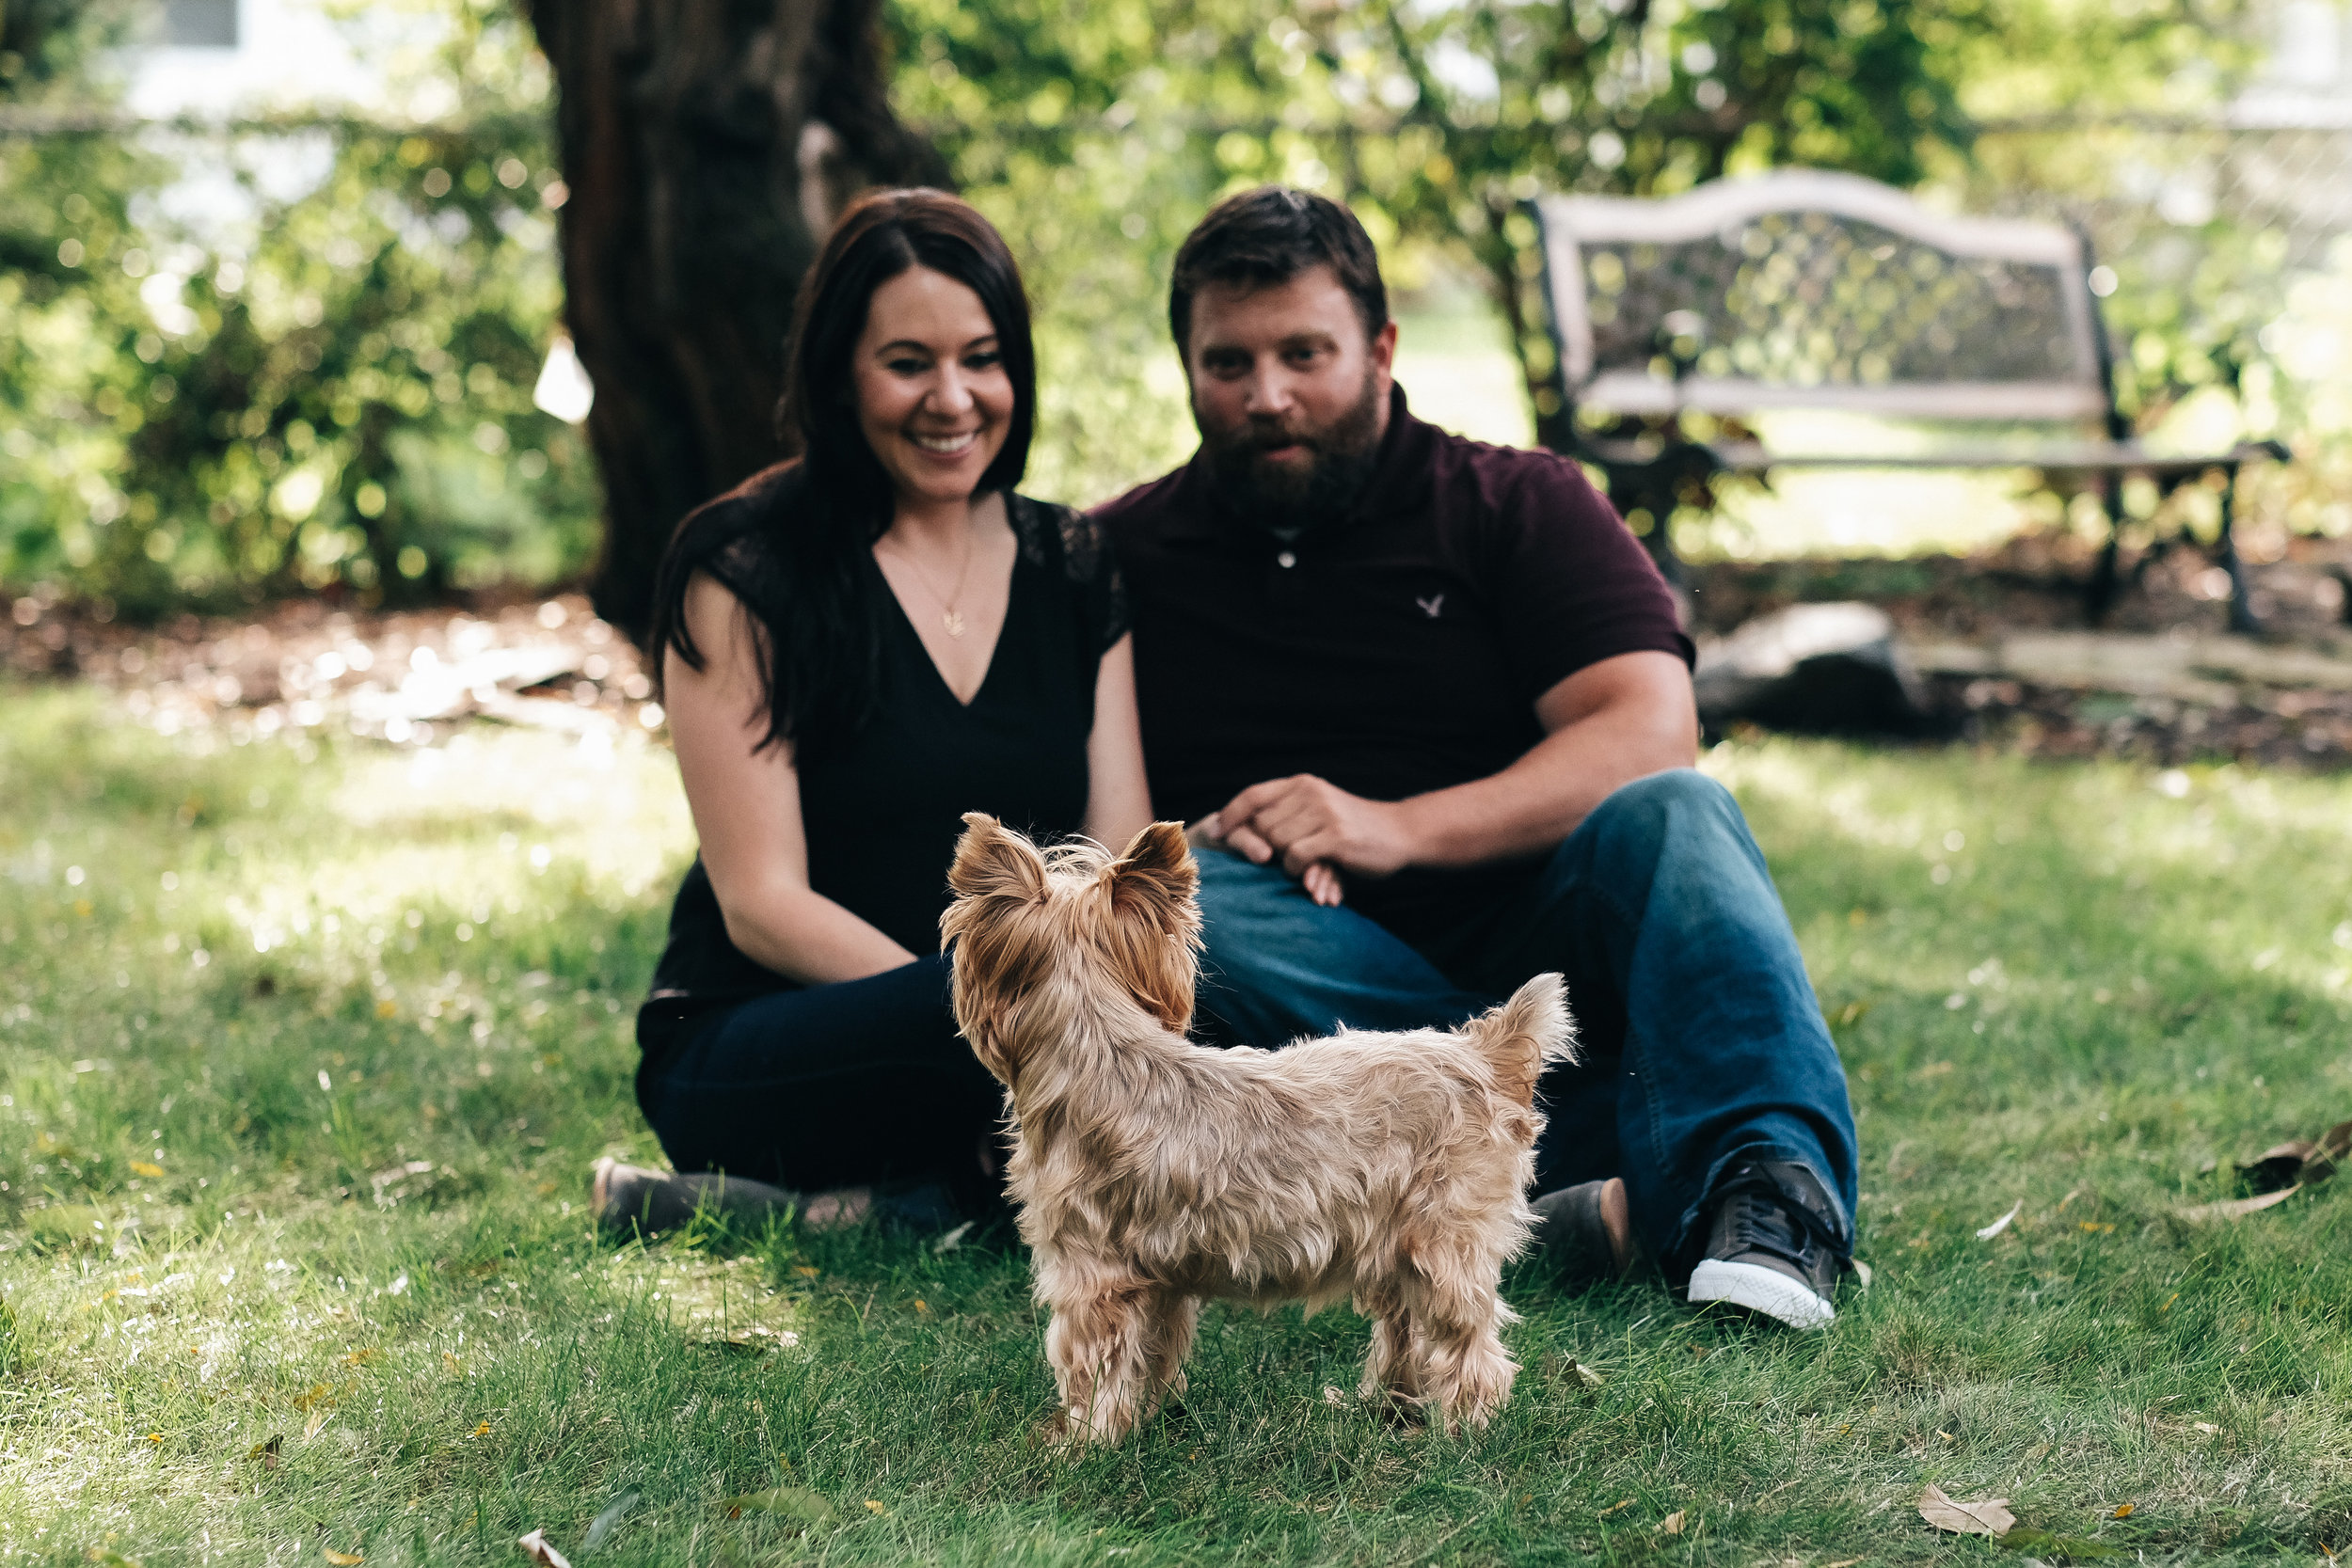 Dog engagement session in Perrysburg, Ohio.